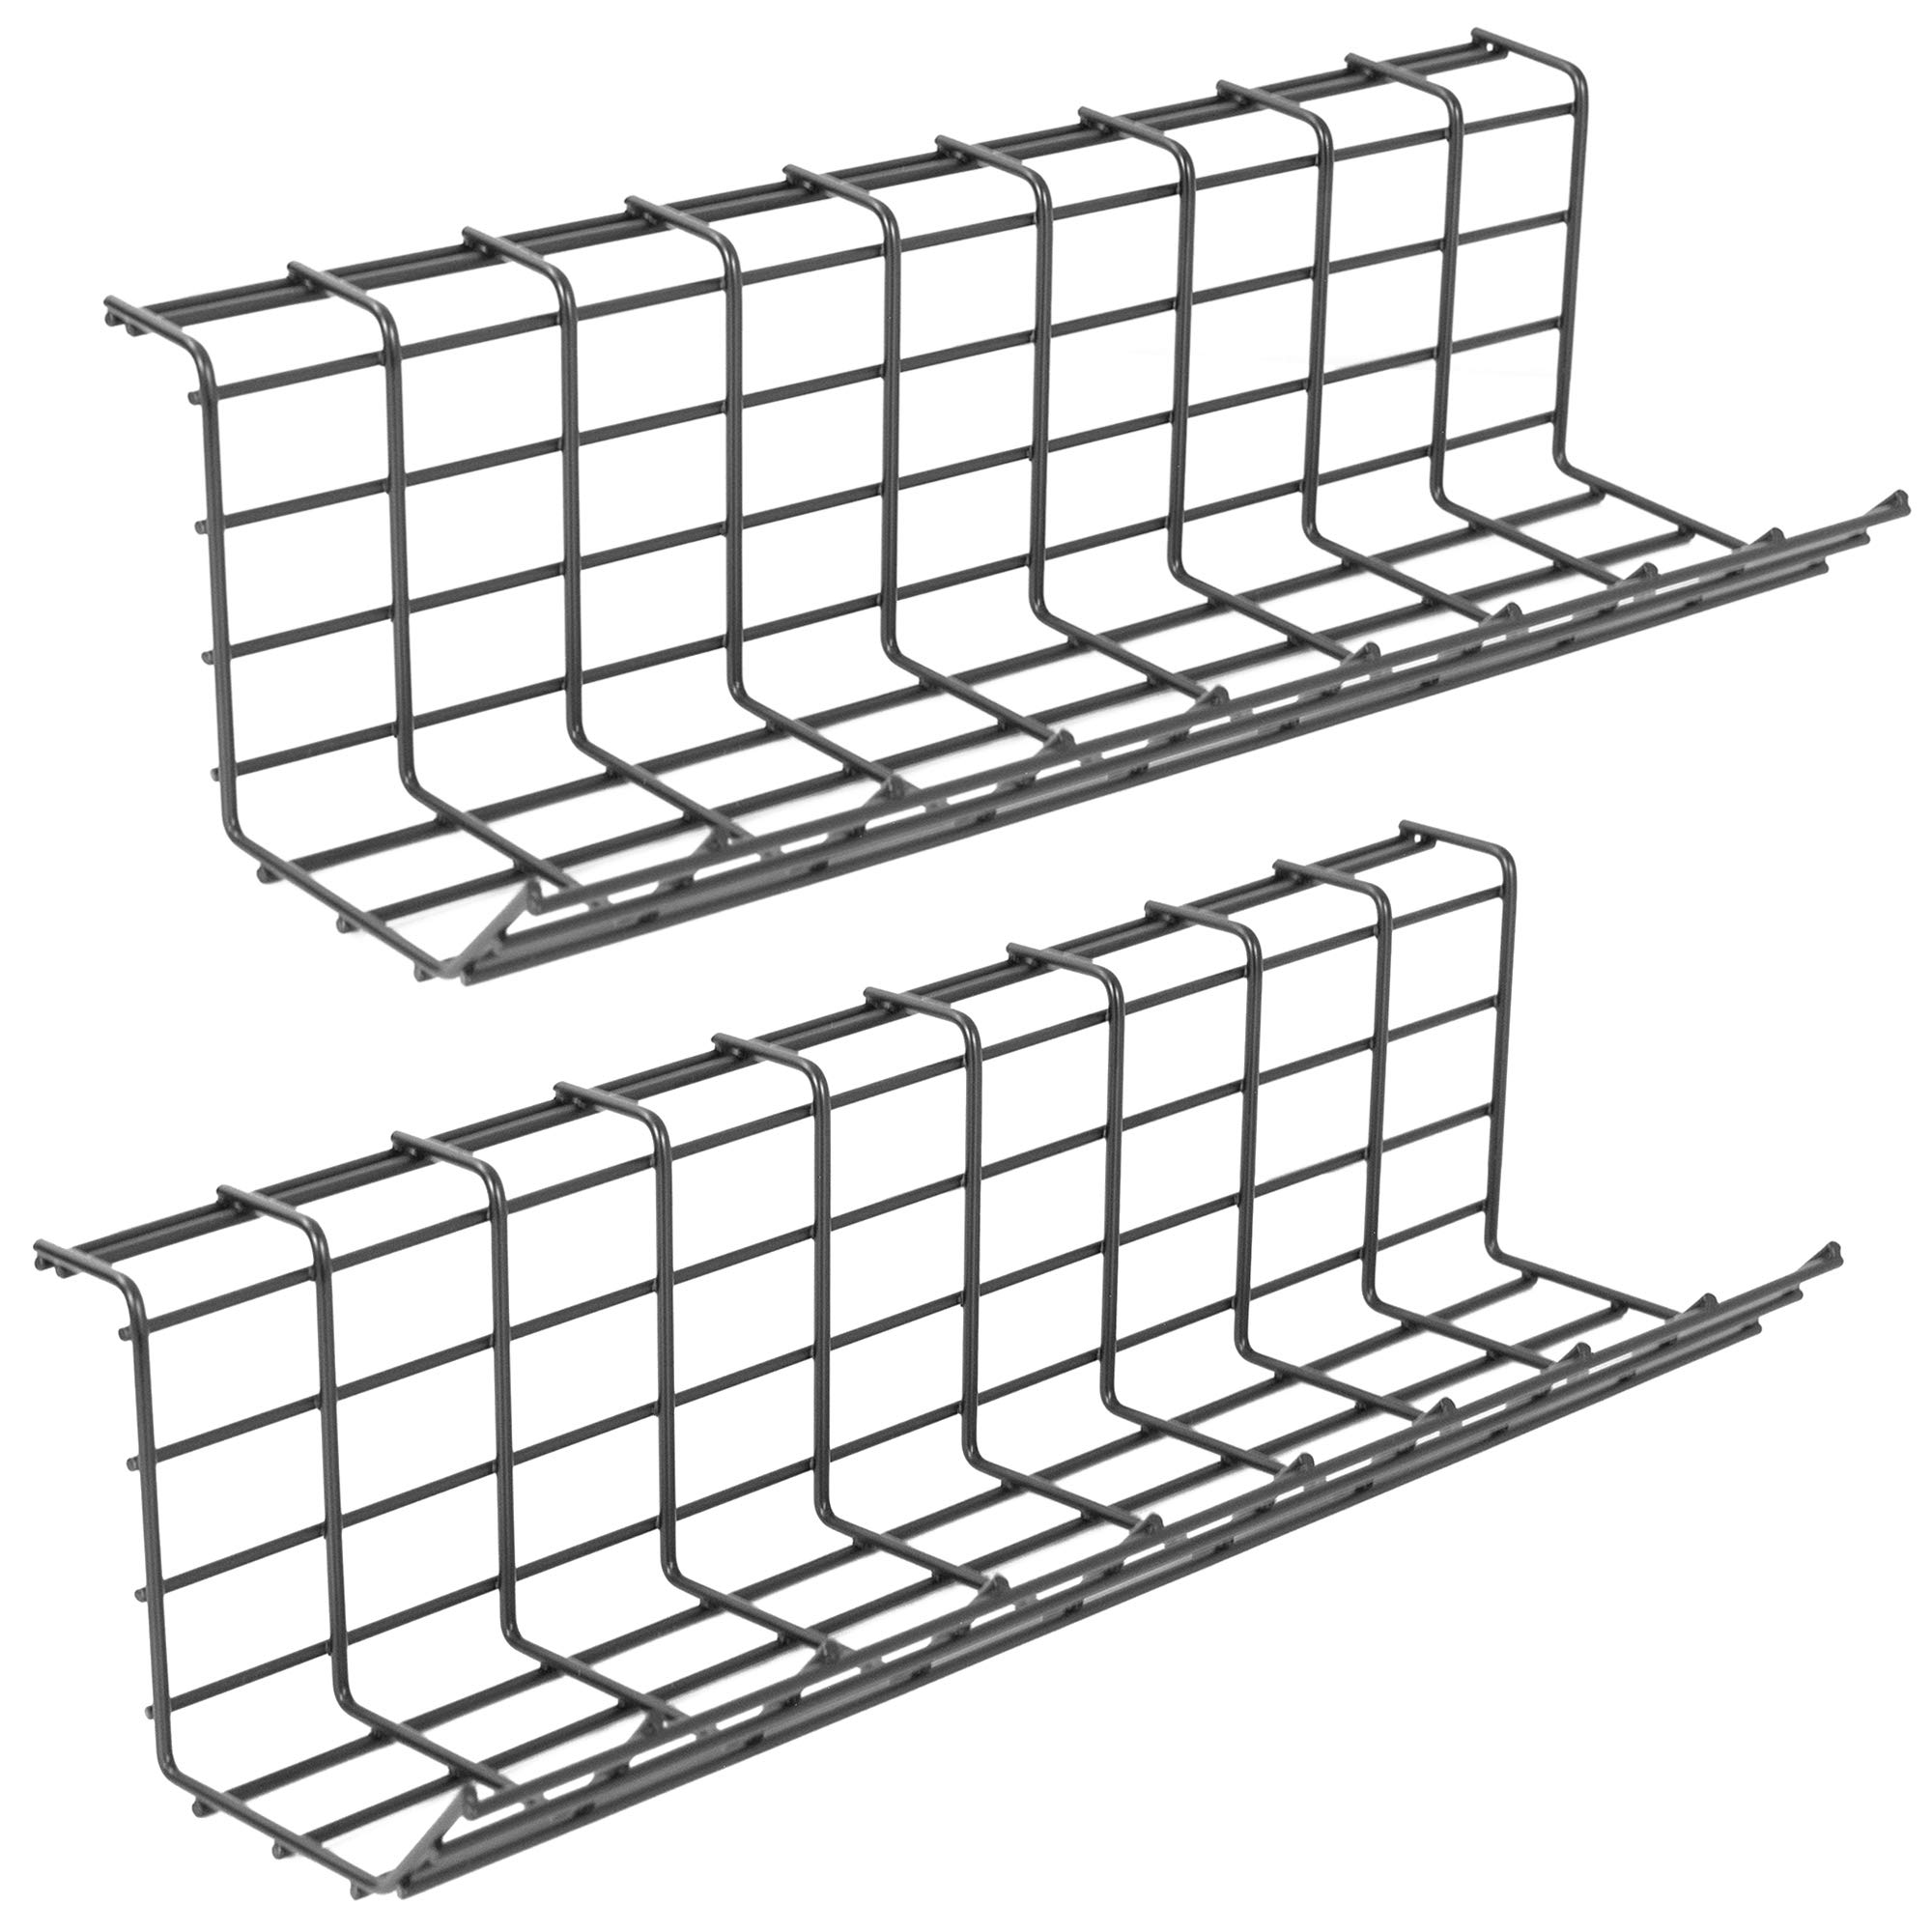 VIVO Iron Dual Under Desk 17 inch Cable Management Wire Racks, Power Strip Holders, Cord Organizers, Wire Management Trays for Office and Home (2 Pack) (DESK-AC06-2B)